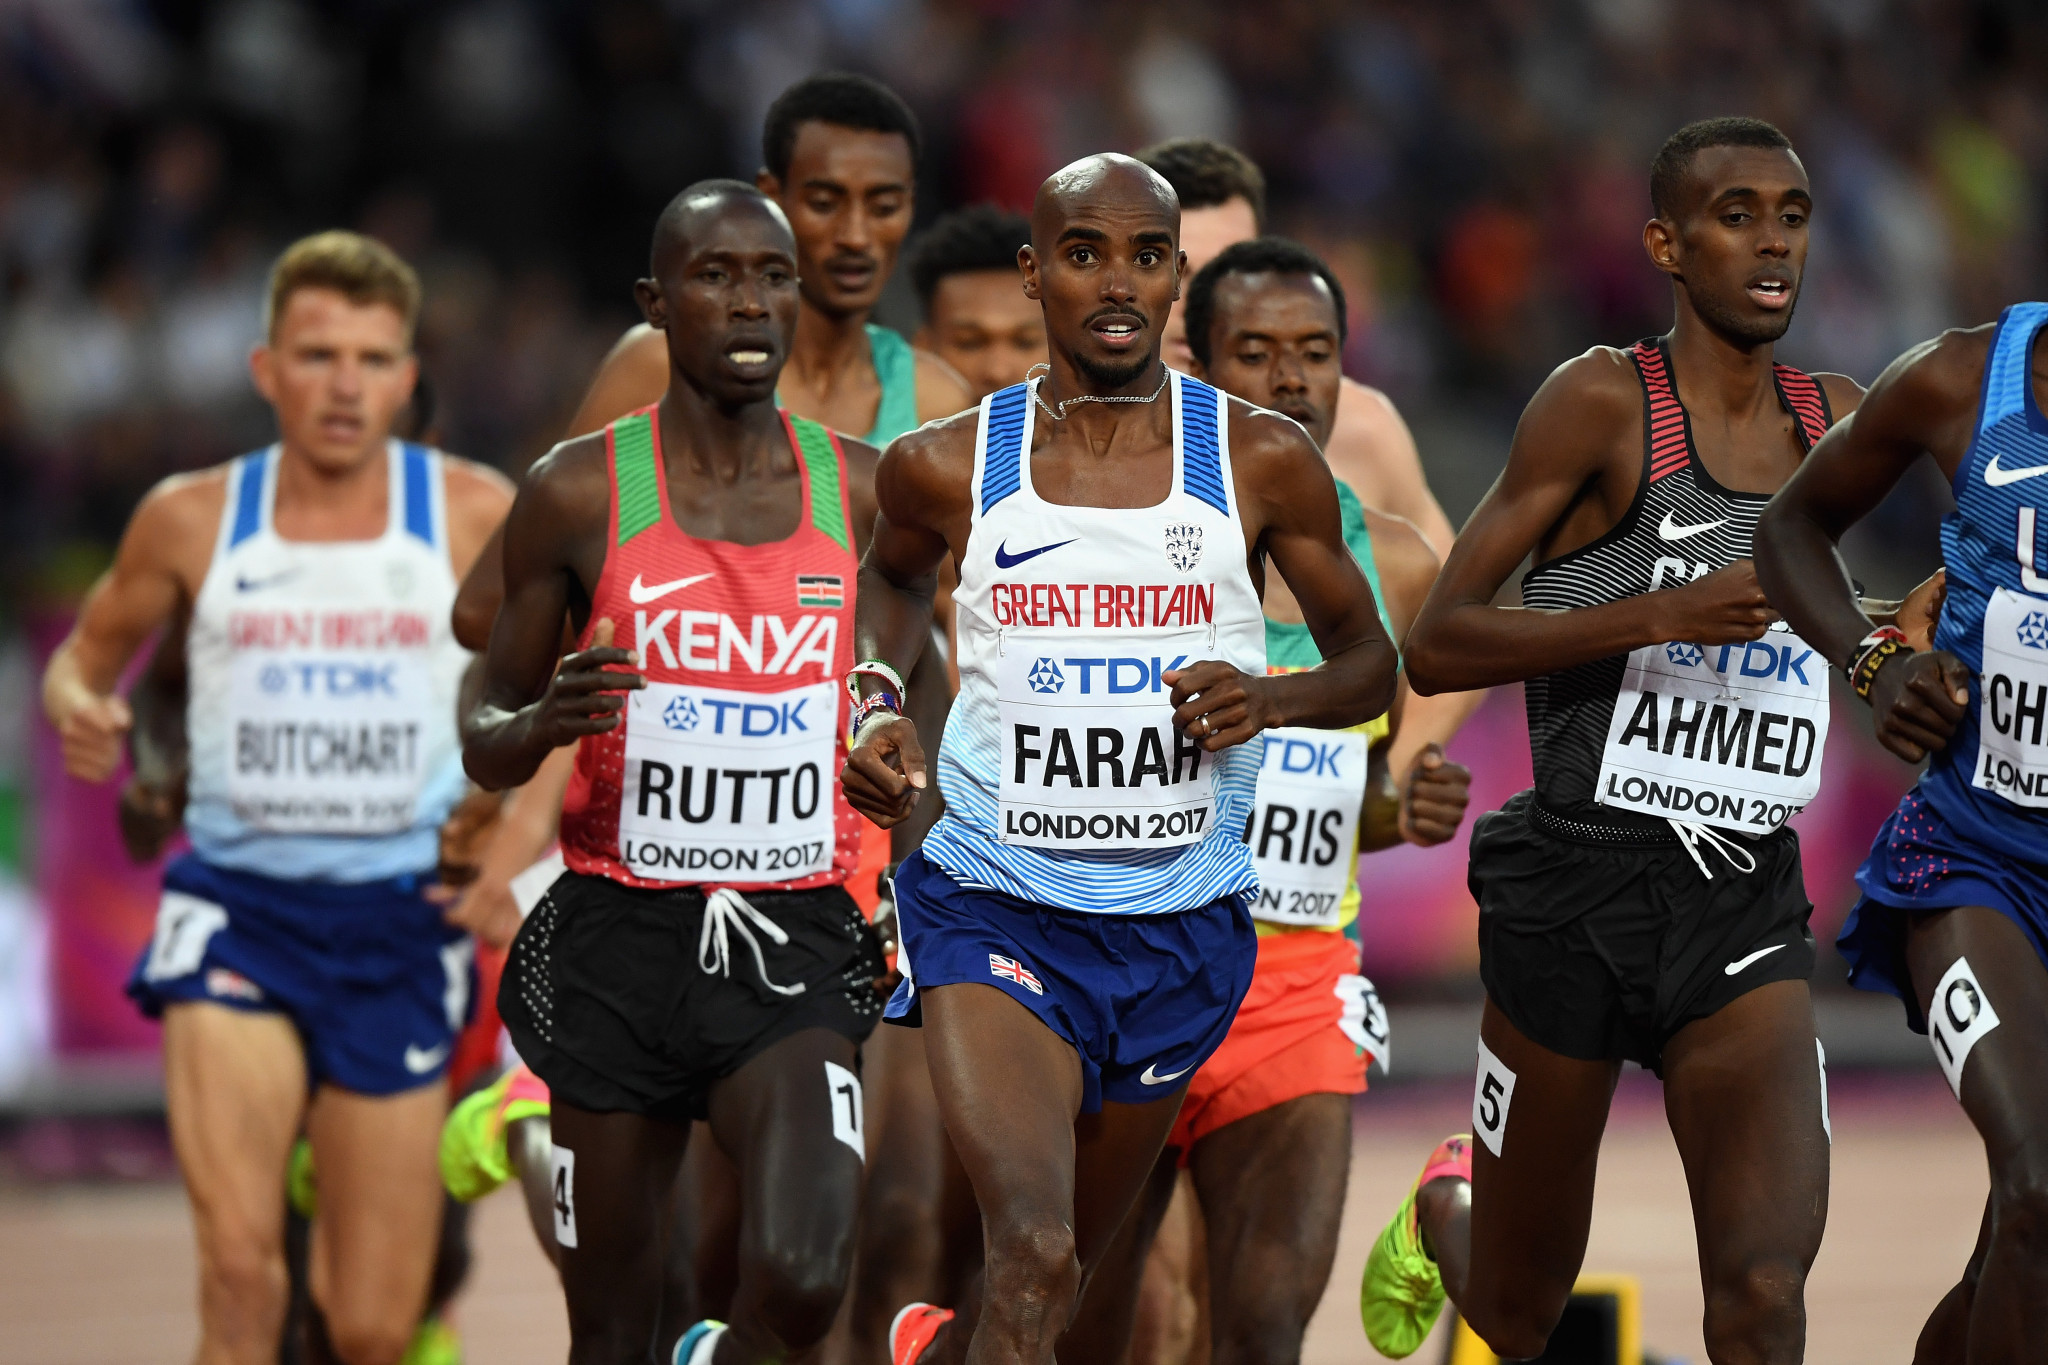 Cyrus Rutto had finished 13th in the 5,000m at the 2017 IAAF World Championships in London ©Getty Images